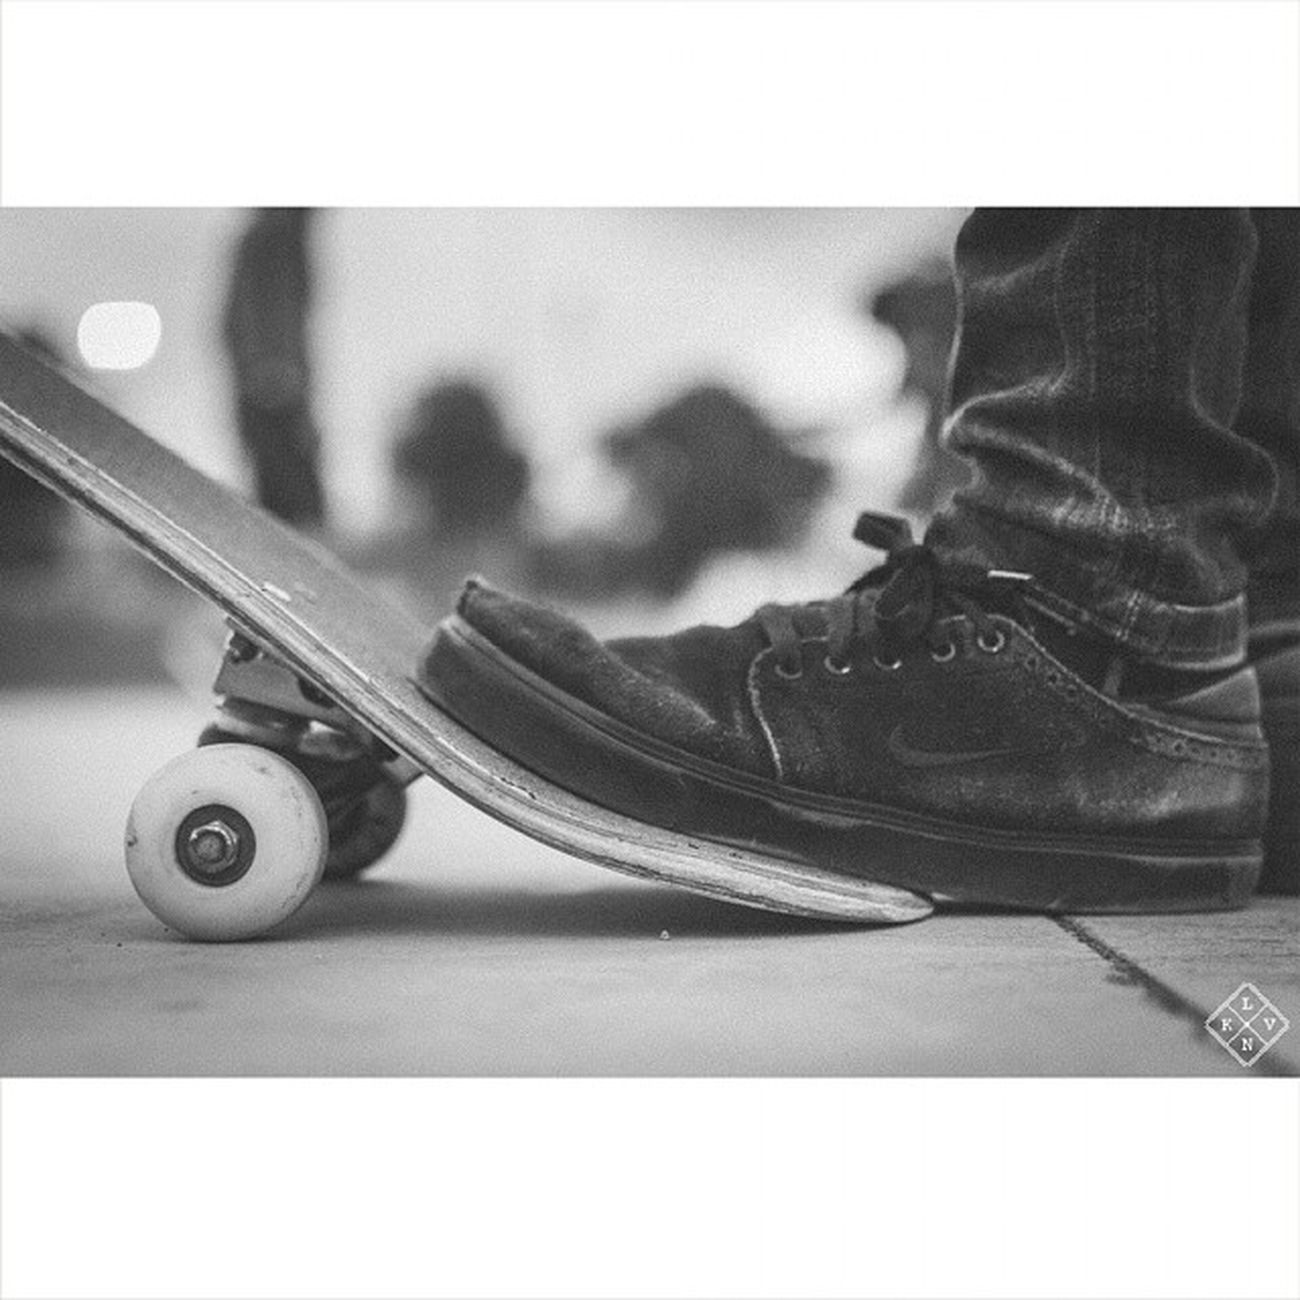 Get ready for the next battle. Skate Skateboarding Girlskate Nikesb bearings vsco vscocam vscogrid vscoedit vscolovers bestofvsco topvsco vscofeature vscogram instavsco vsco_best vscofilm